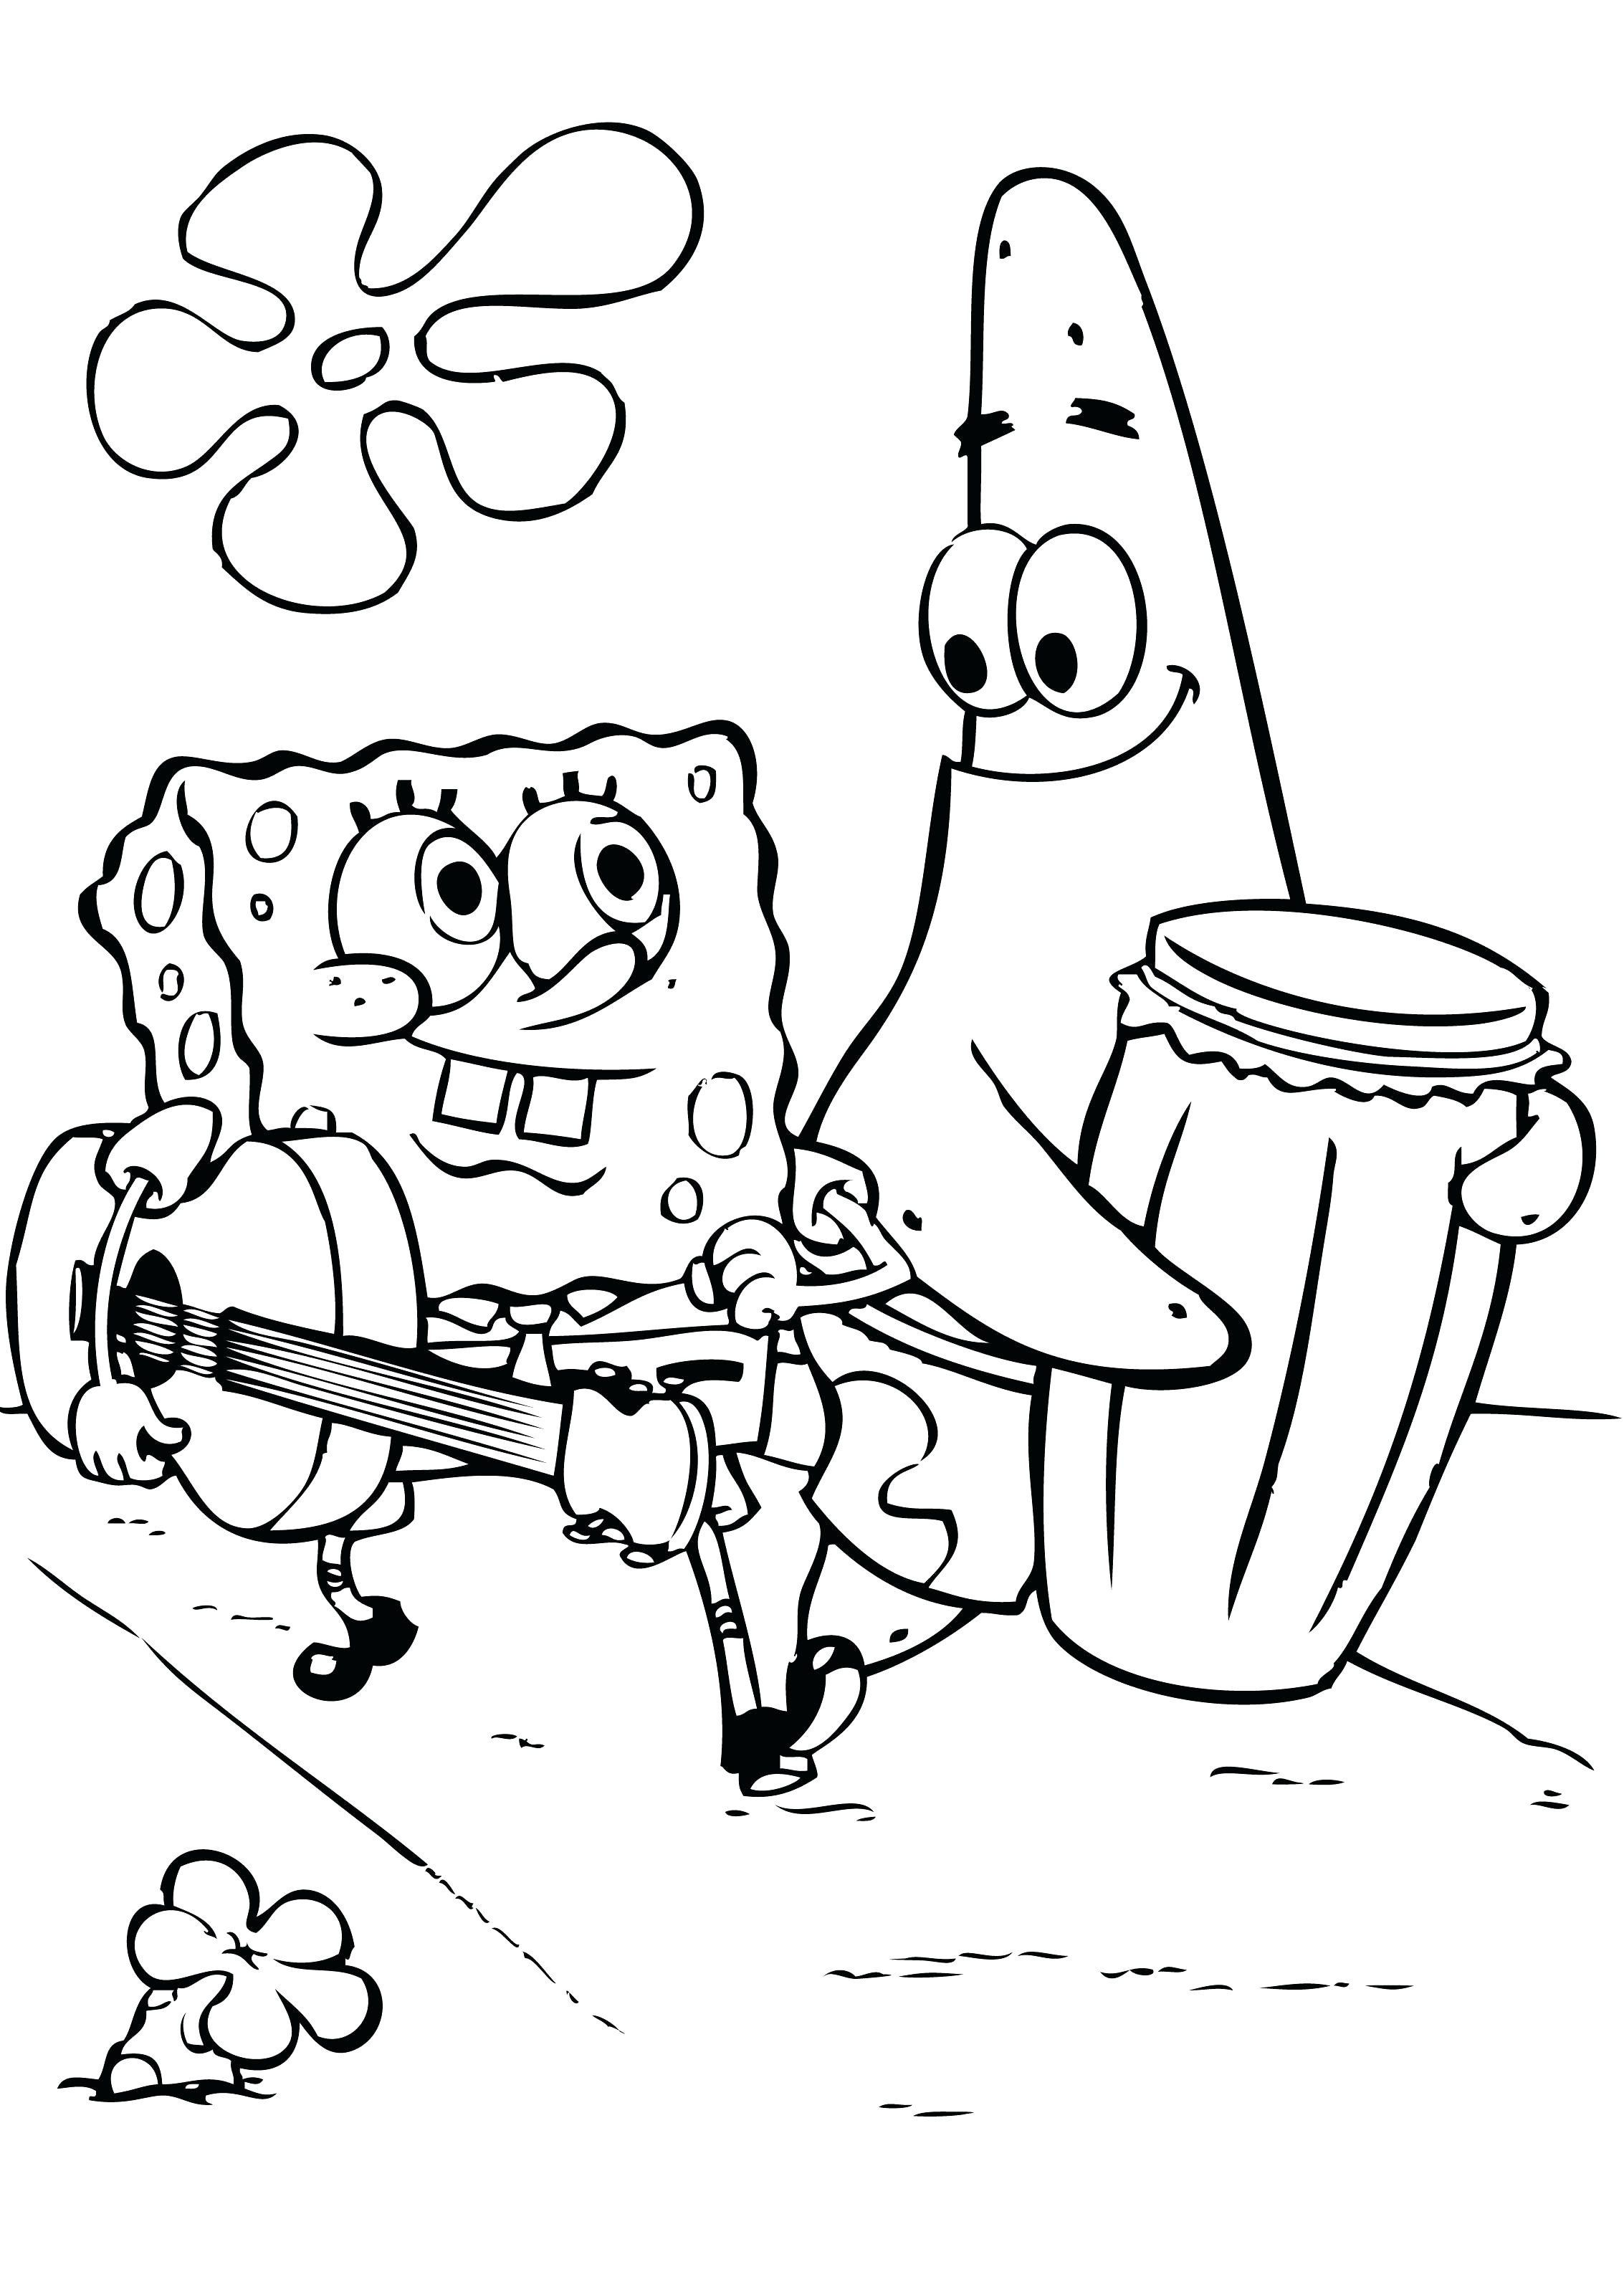 68 Beautiful Images Of Nickelodeon Coloring Pages Check More At Https Www Mercerepc Com Nickelodeon Coloring Pages Ausmalbilder Pokemon Ausmalbilder Ausmalen